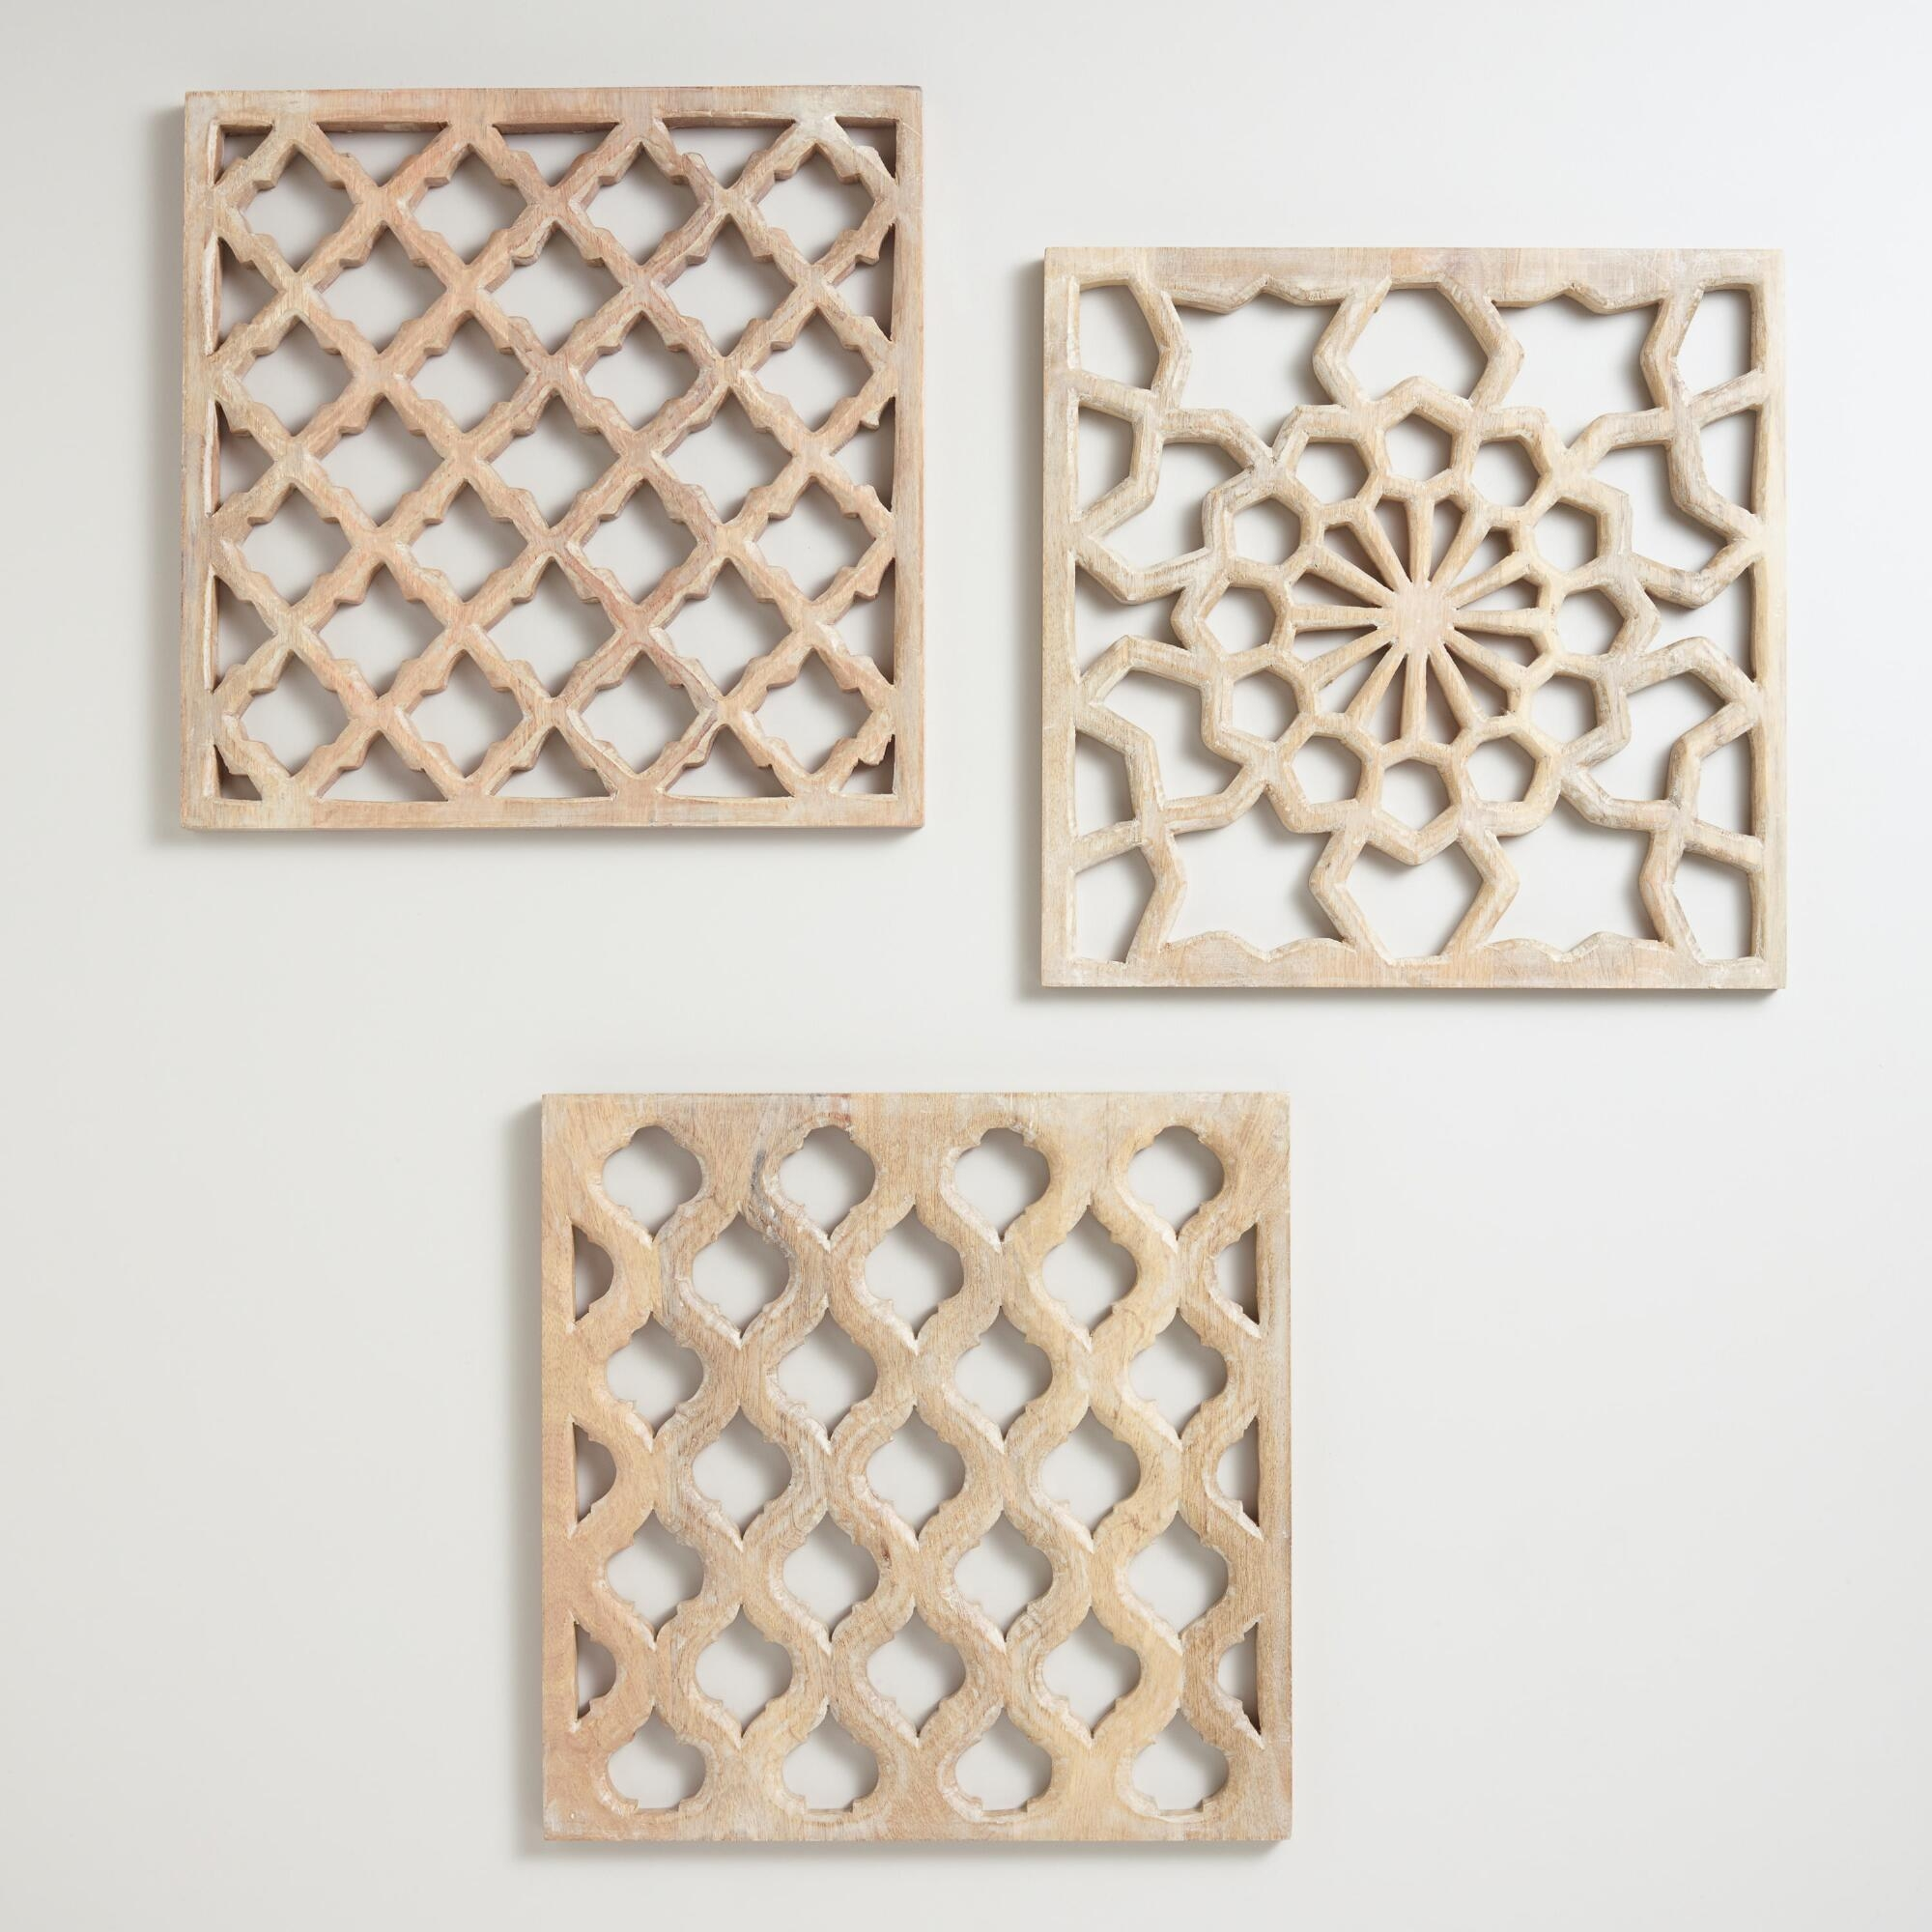 Carved Wooden Wall Panels – Wooden Wall Panels: Way To Enhance The With Regard To Wooden Wall Art Panels (Image 7 of 20)